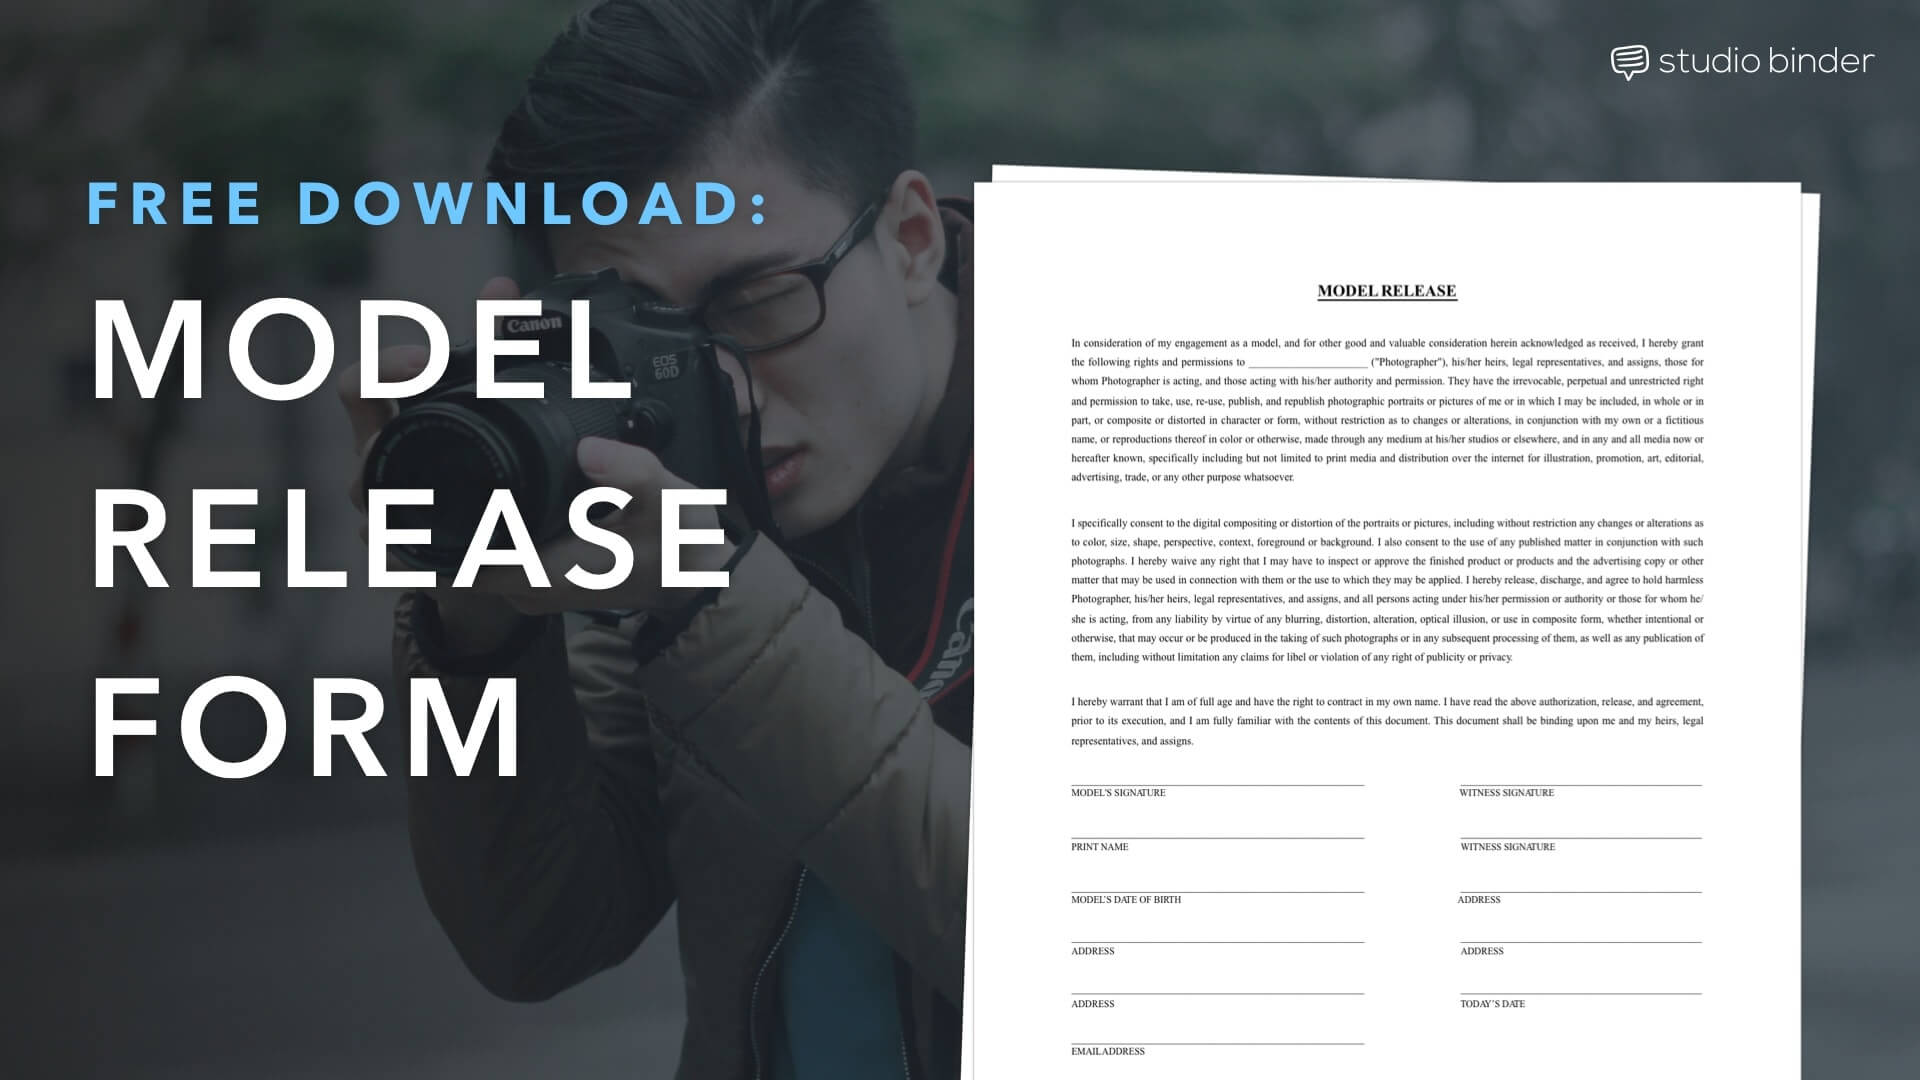 FREE Model Release Form Template Download PDF - Featured Image - StudioBinder